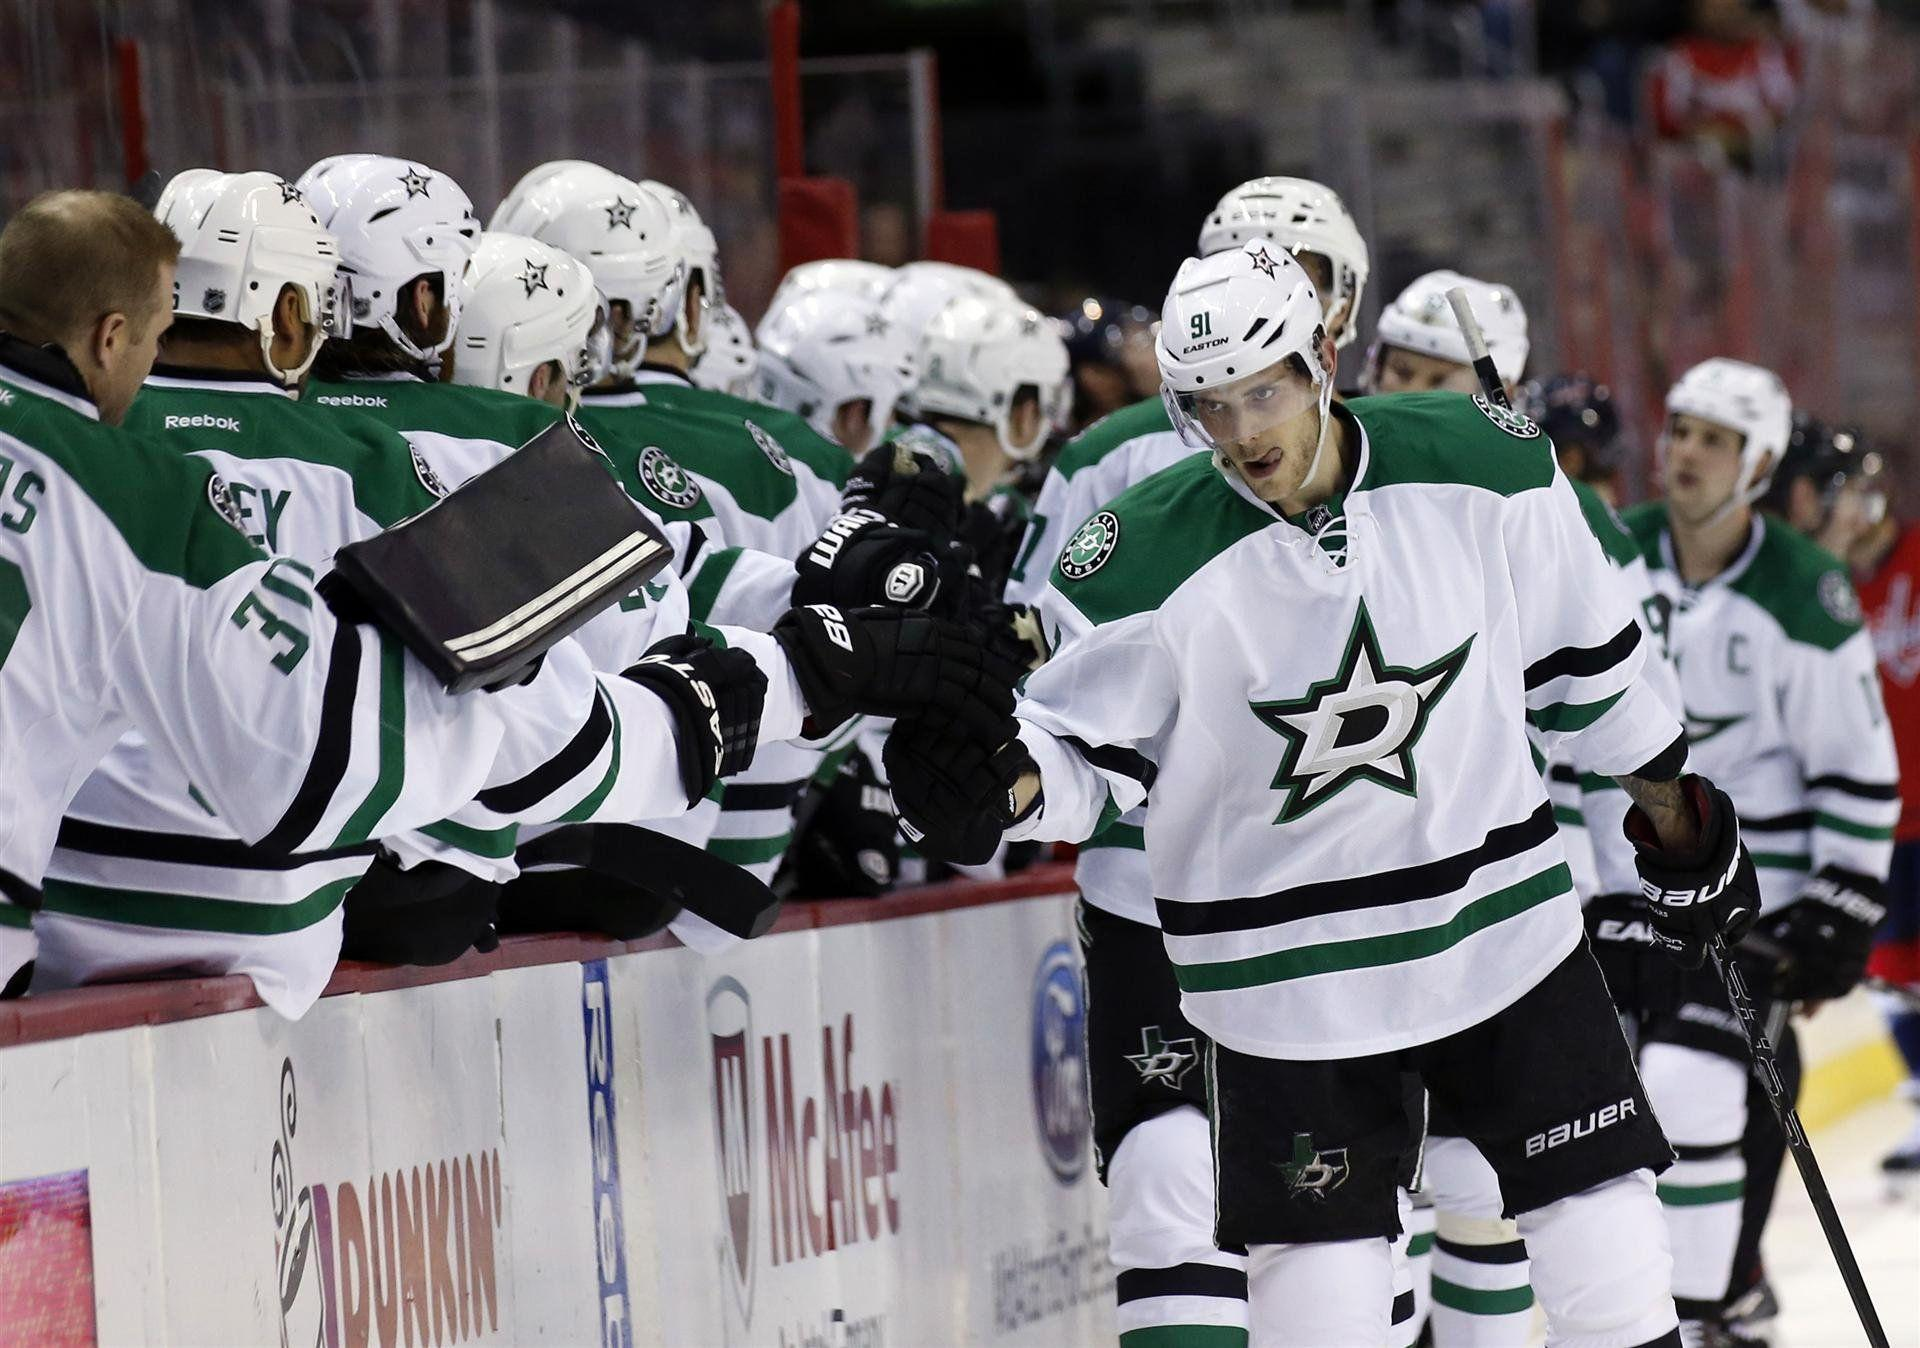 Dallas Stars Wallpapers for iPhone - WallpaperSafari